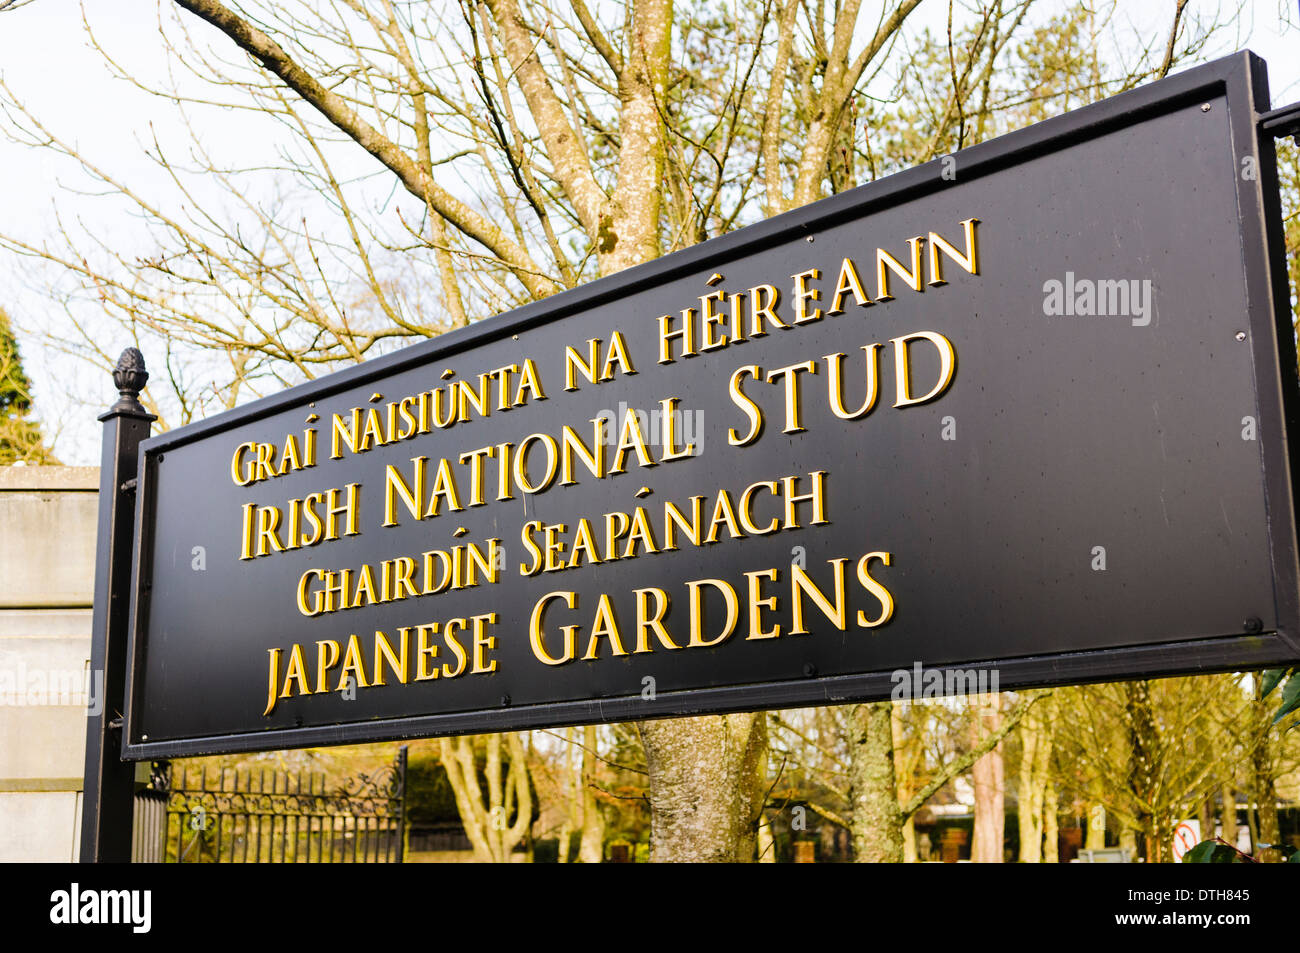 Sign for the Irish National Stud and Japanese Gardens in Kildare, Ireland - Stock Image